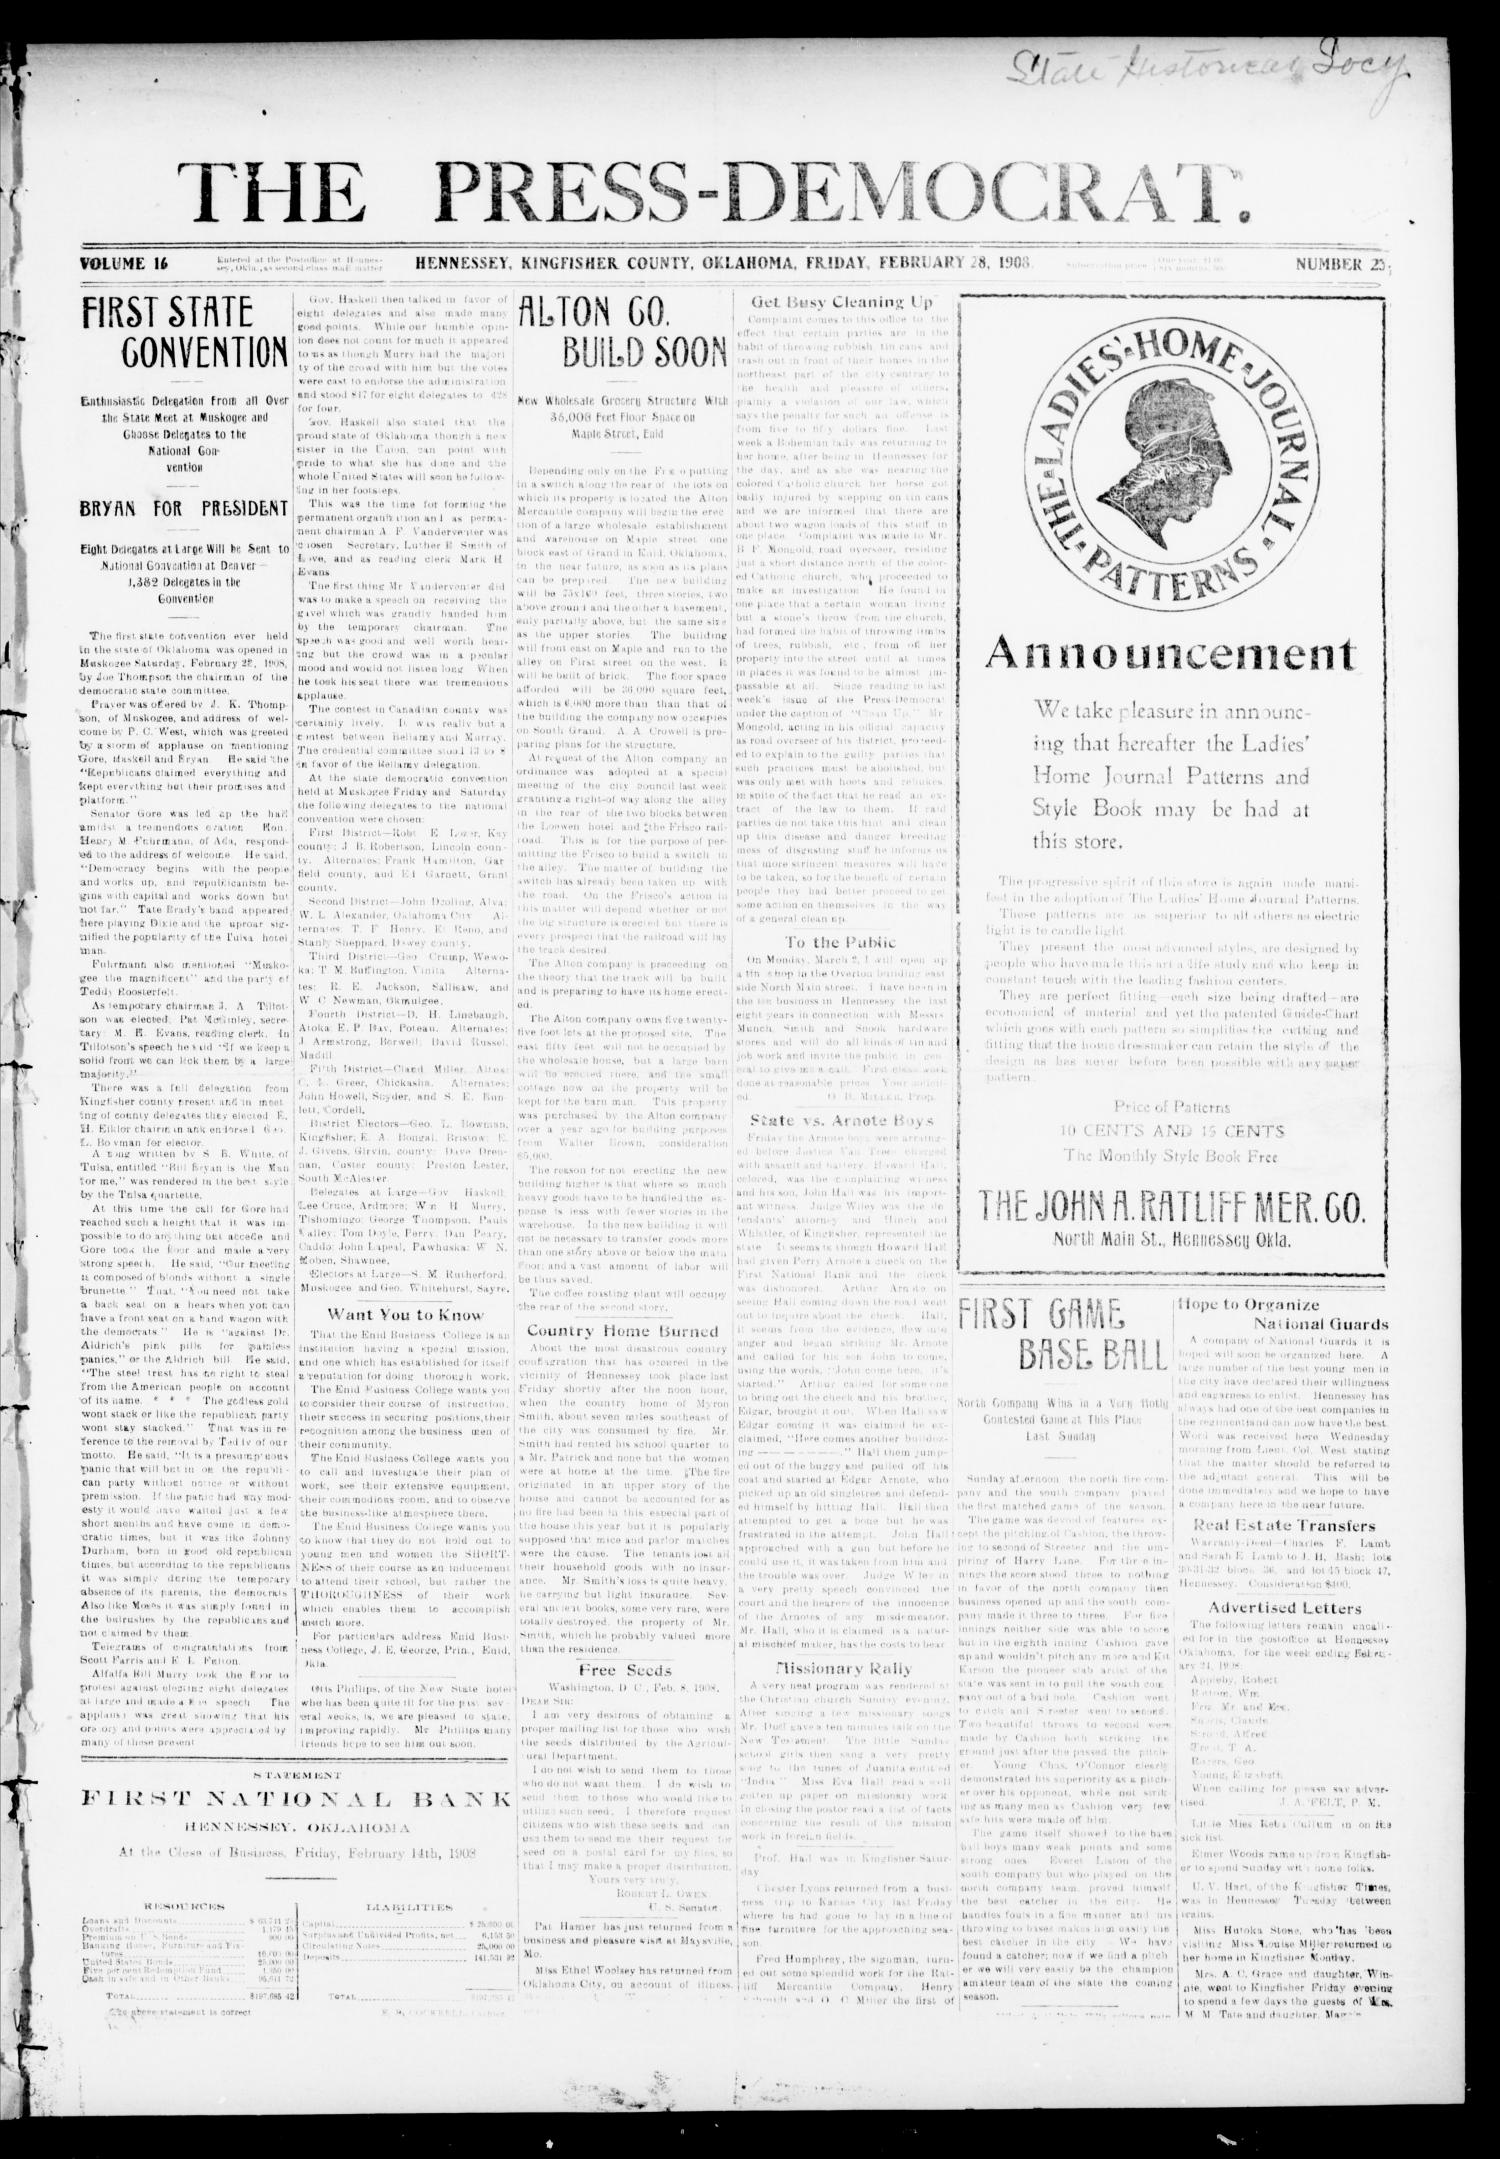 The Press-Democrat. (Hennessey, Okla.), Vol. 16, No. 23, Ed. 1 Friday, February 28, 1908                                                                                                      [Sequence #]: 1 of 4